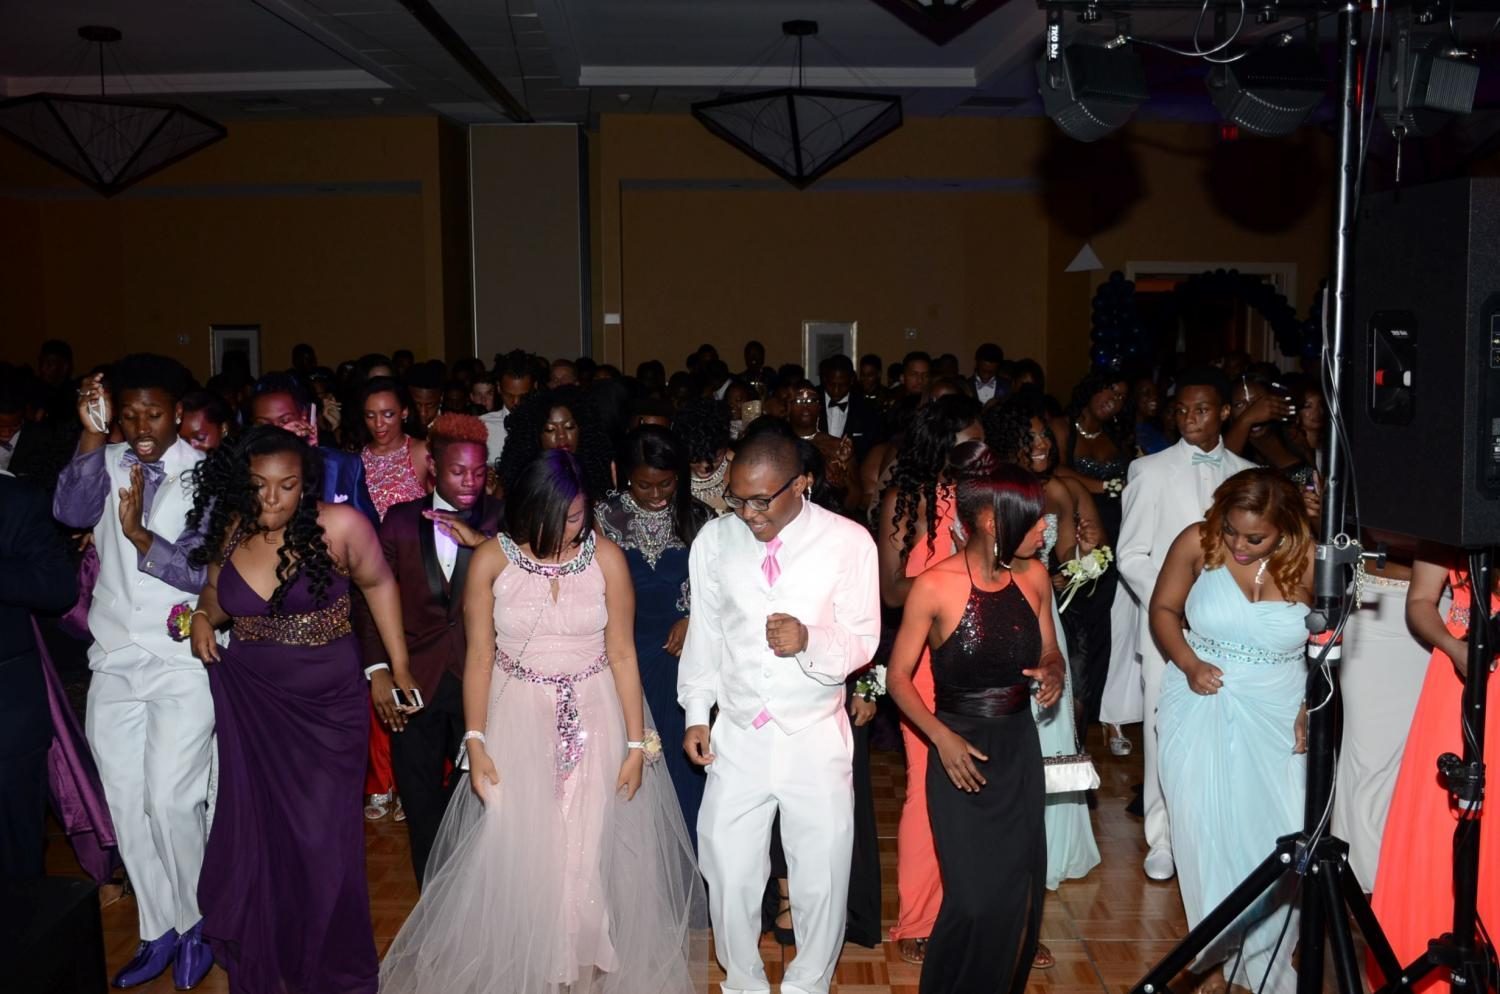 For+many+Hawks%2C+prom+is+the+culmination+of+a+lot+of+anticipation+and+excitement.